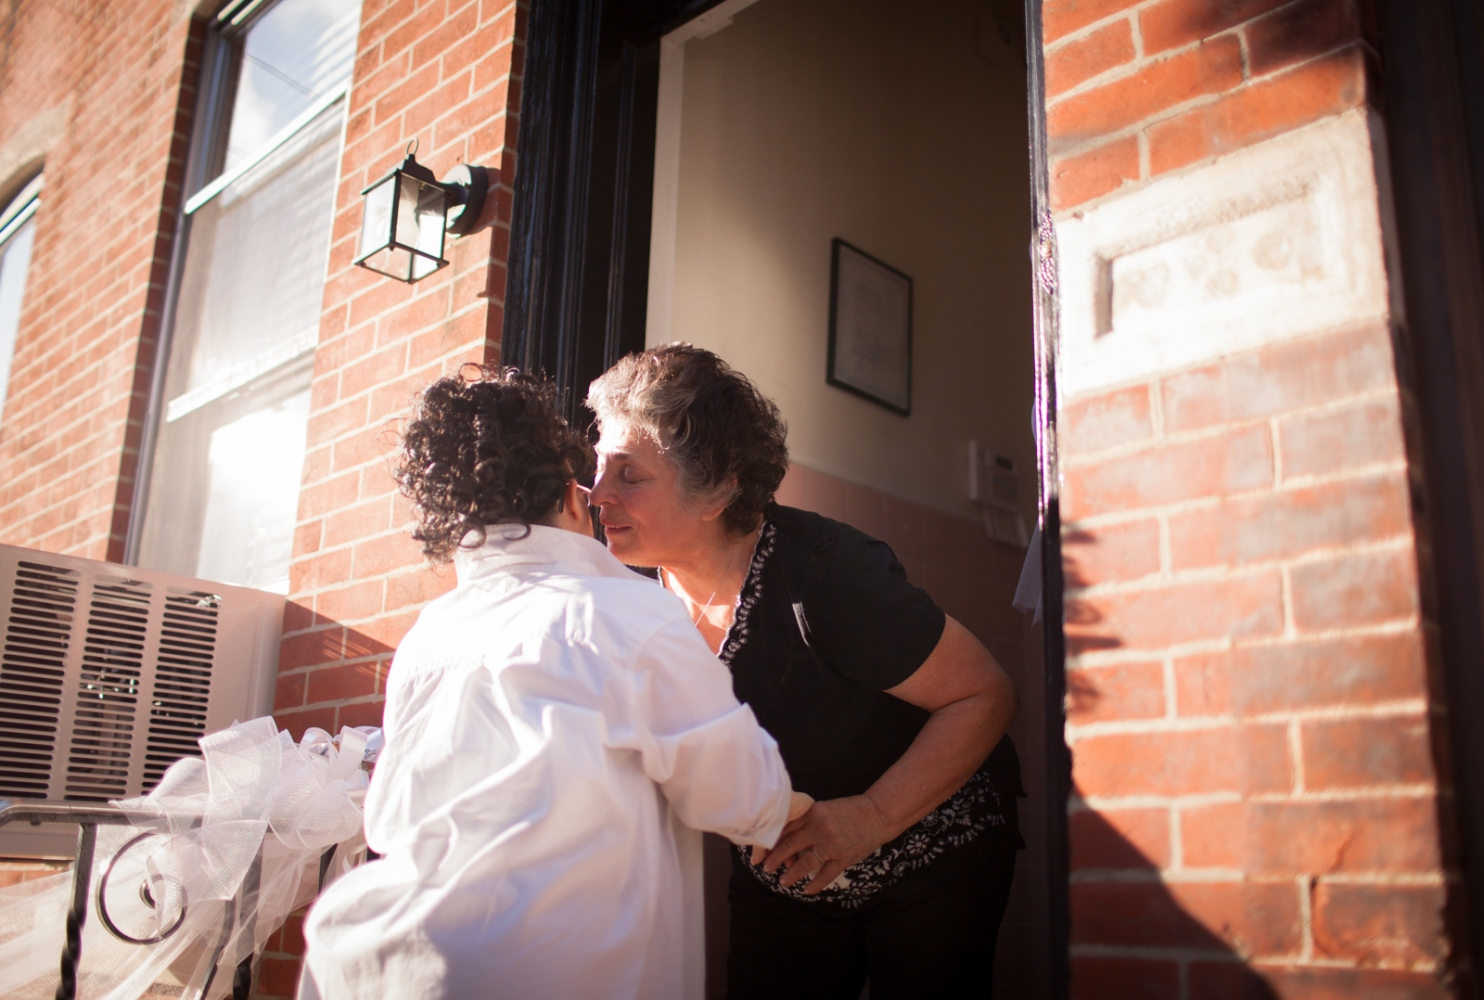 Ricchina's Aunt Connie greets her at the door in tears, overwhelmed by her transformation.